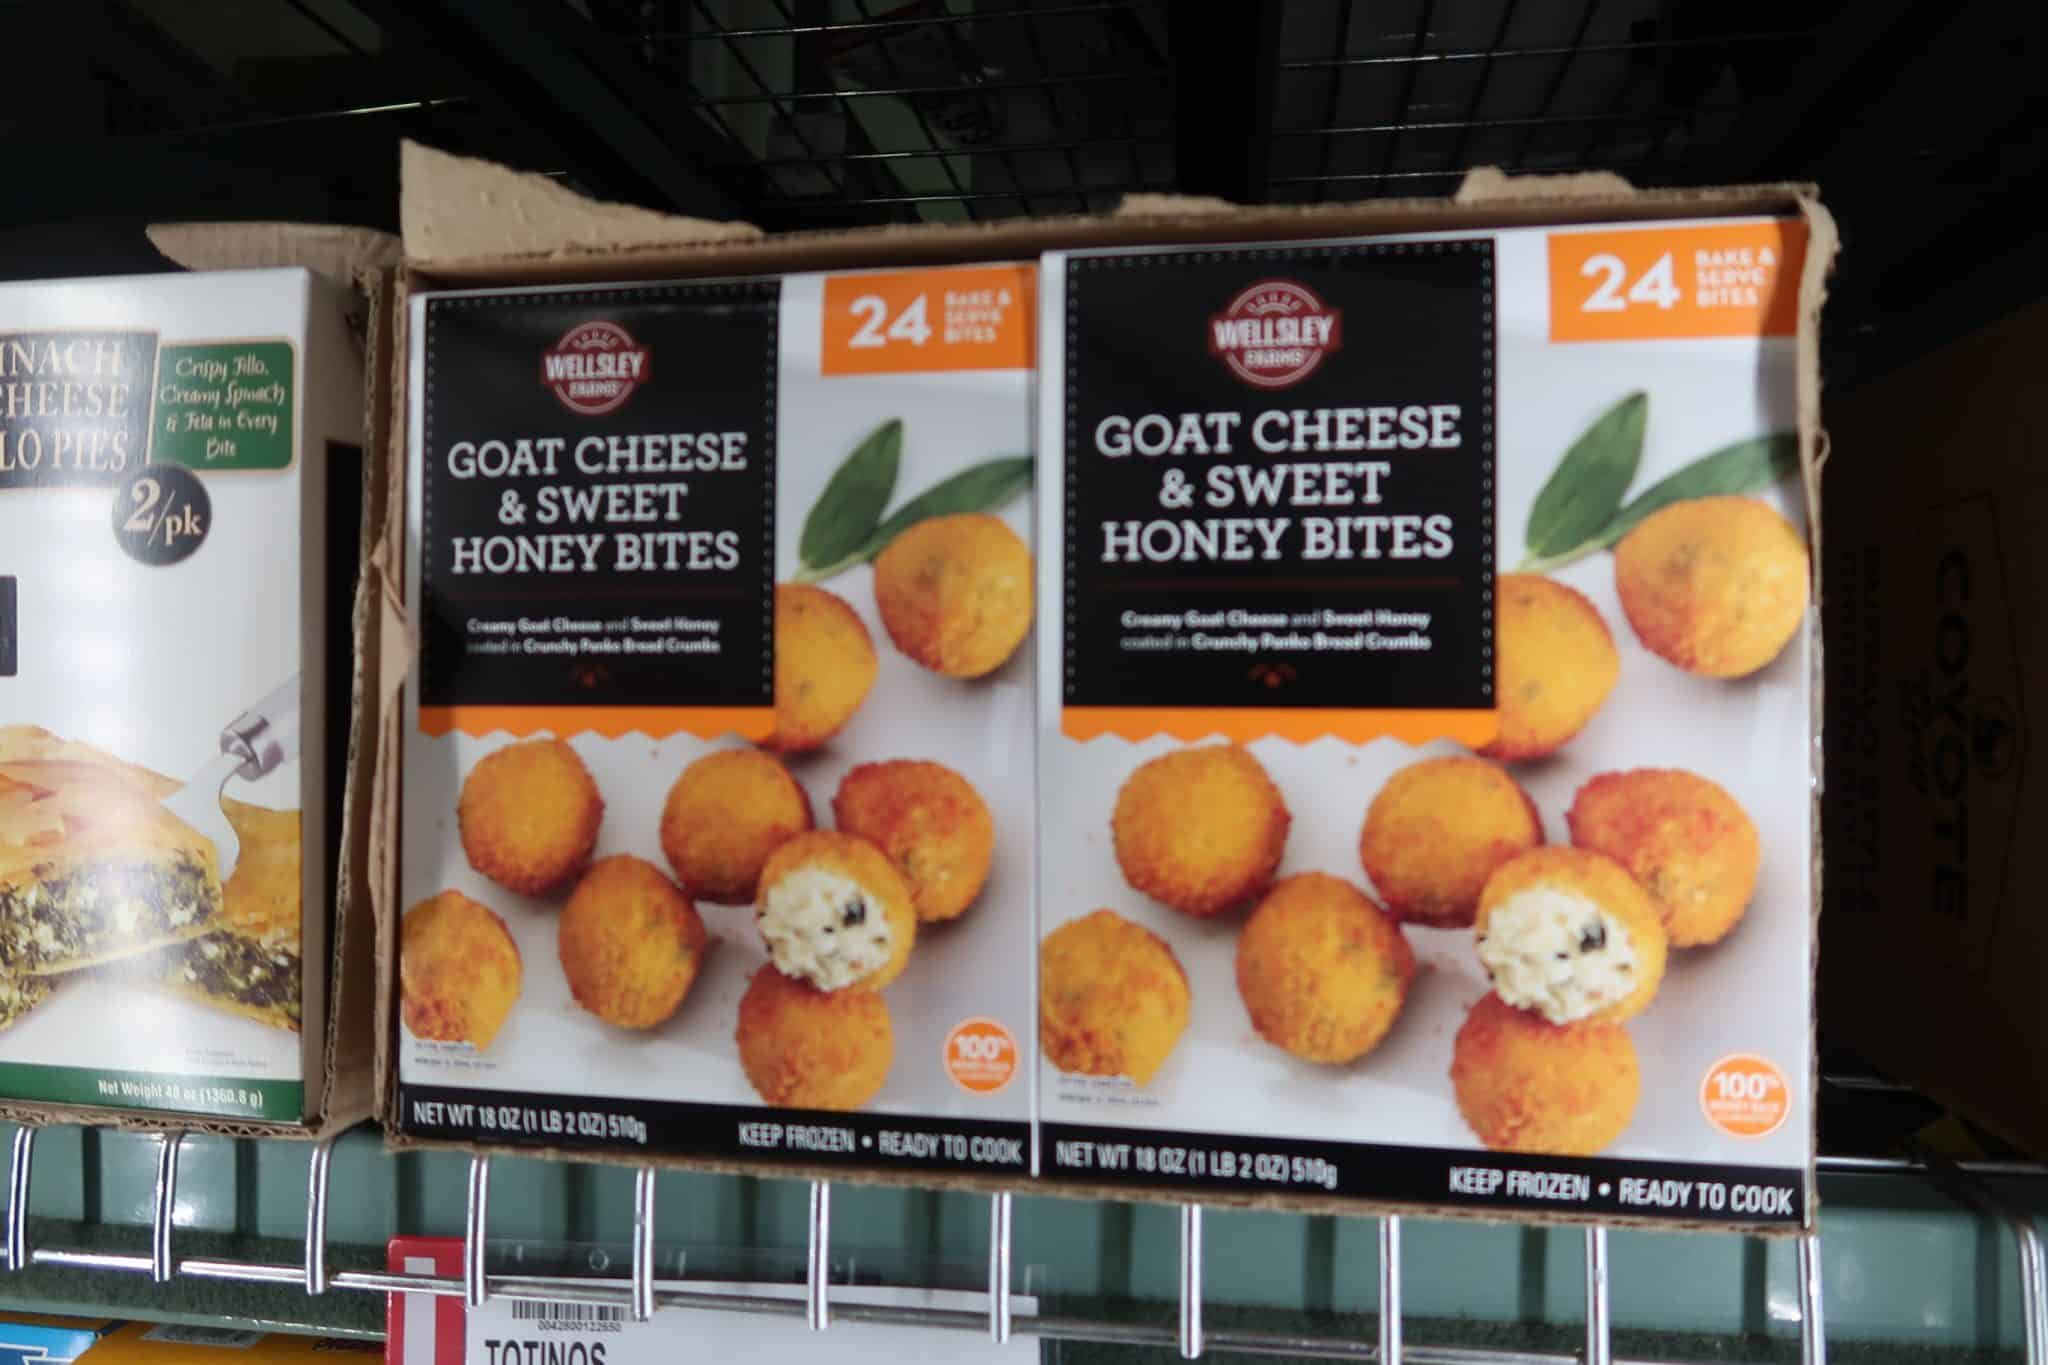 Goat Cheese & Sweet Honey Bites ONLY $7.98